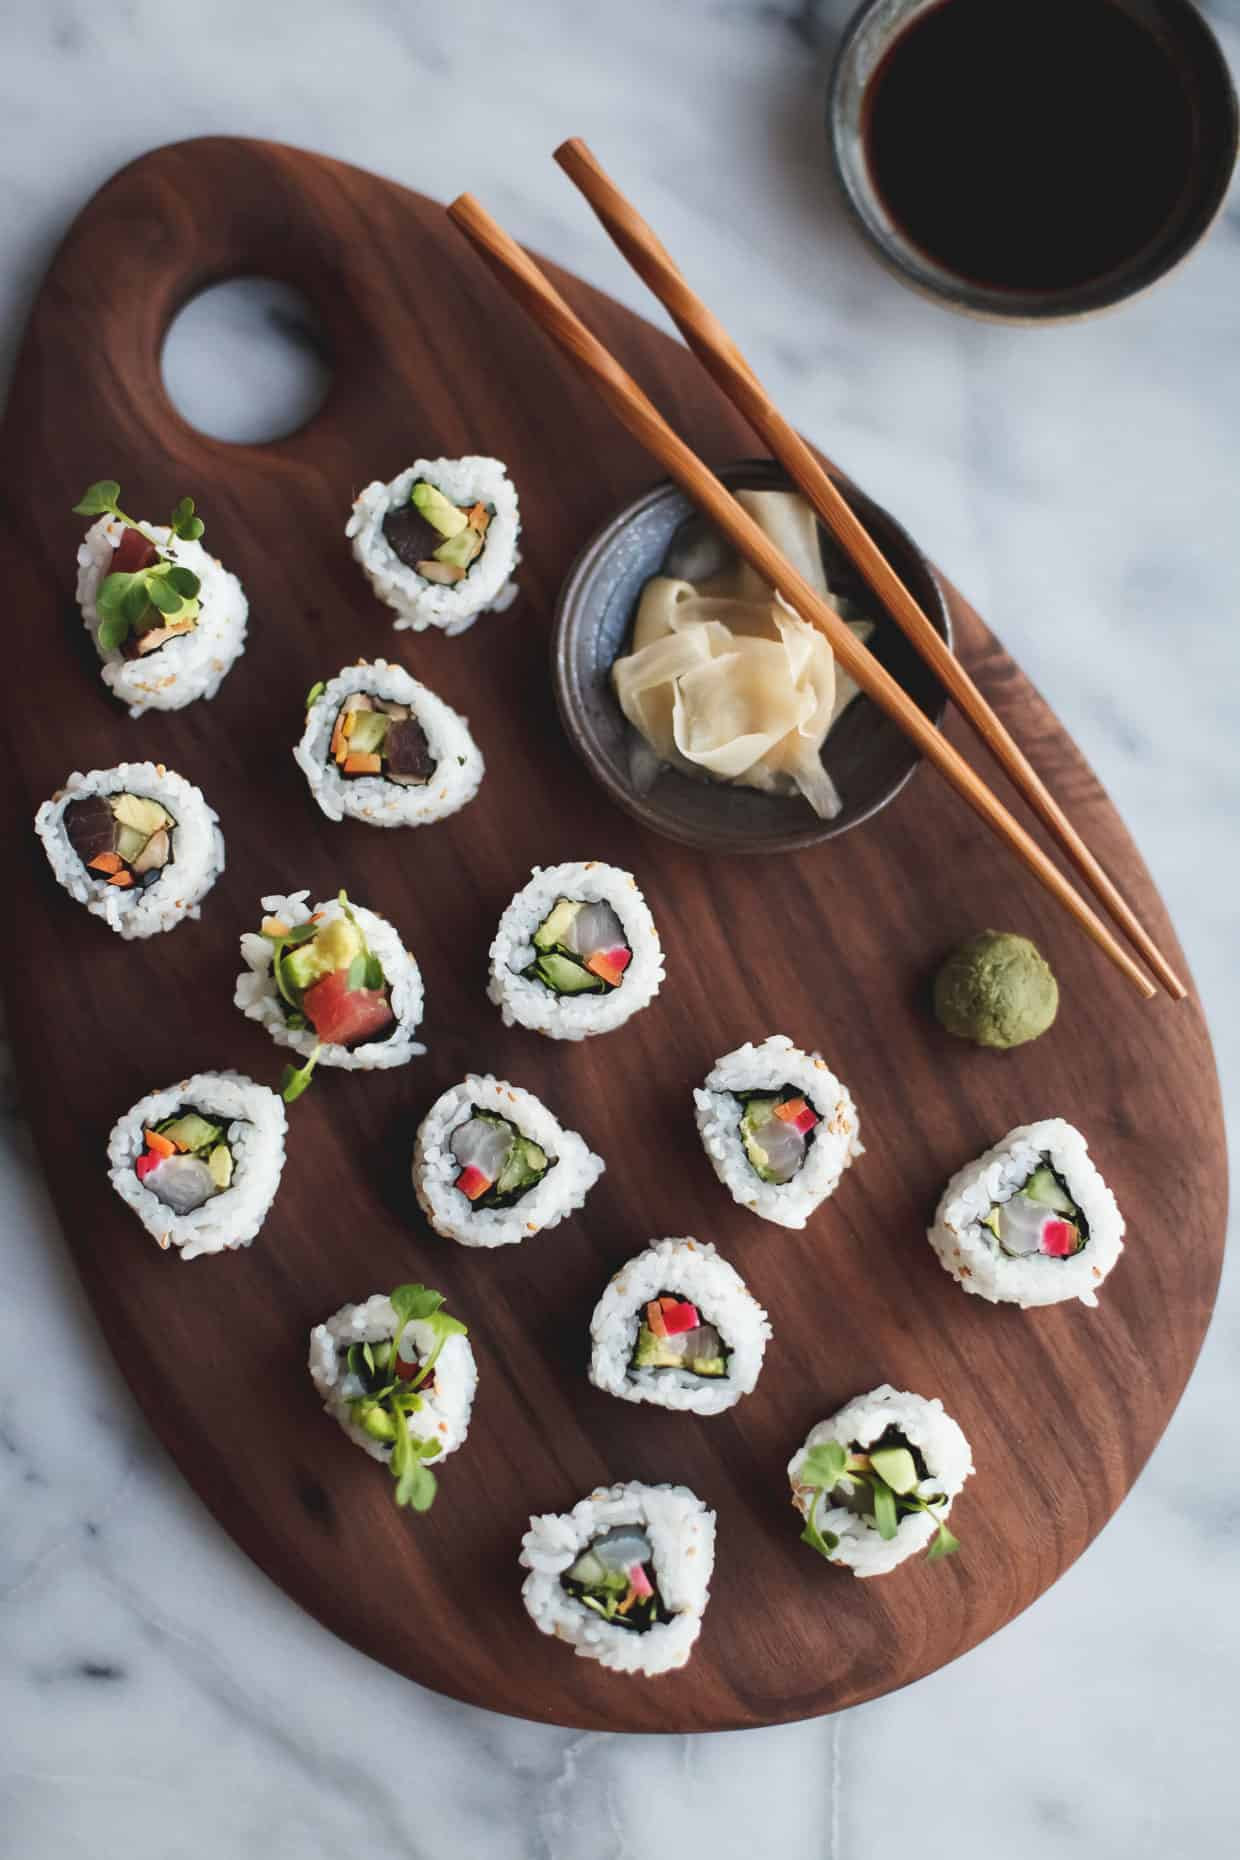 DIY Sushi at Home with a How-to Video - Snixy Kitchen